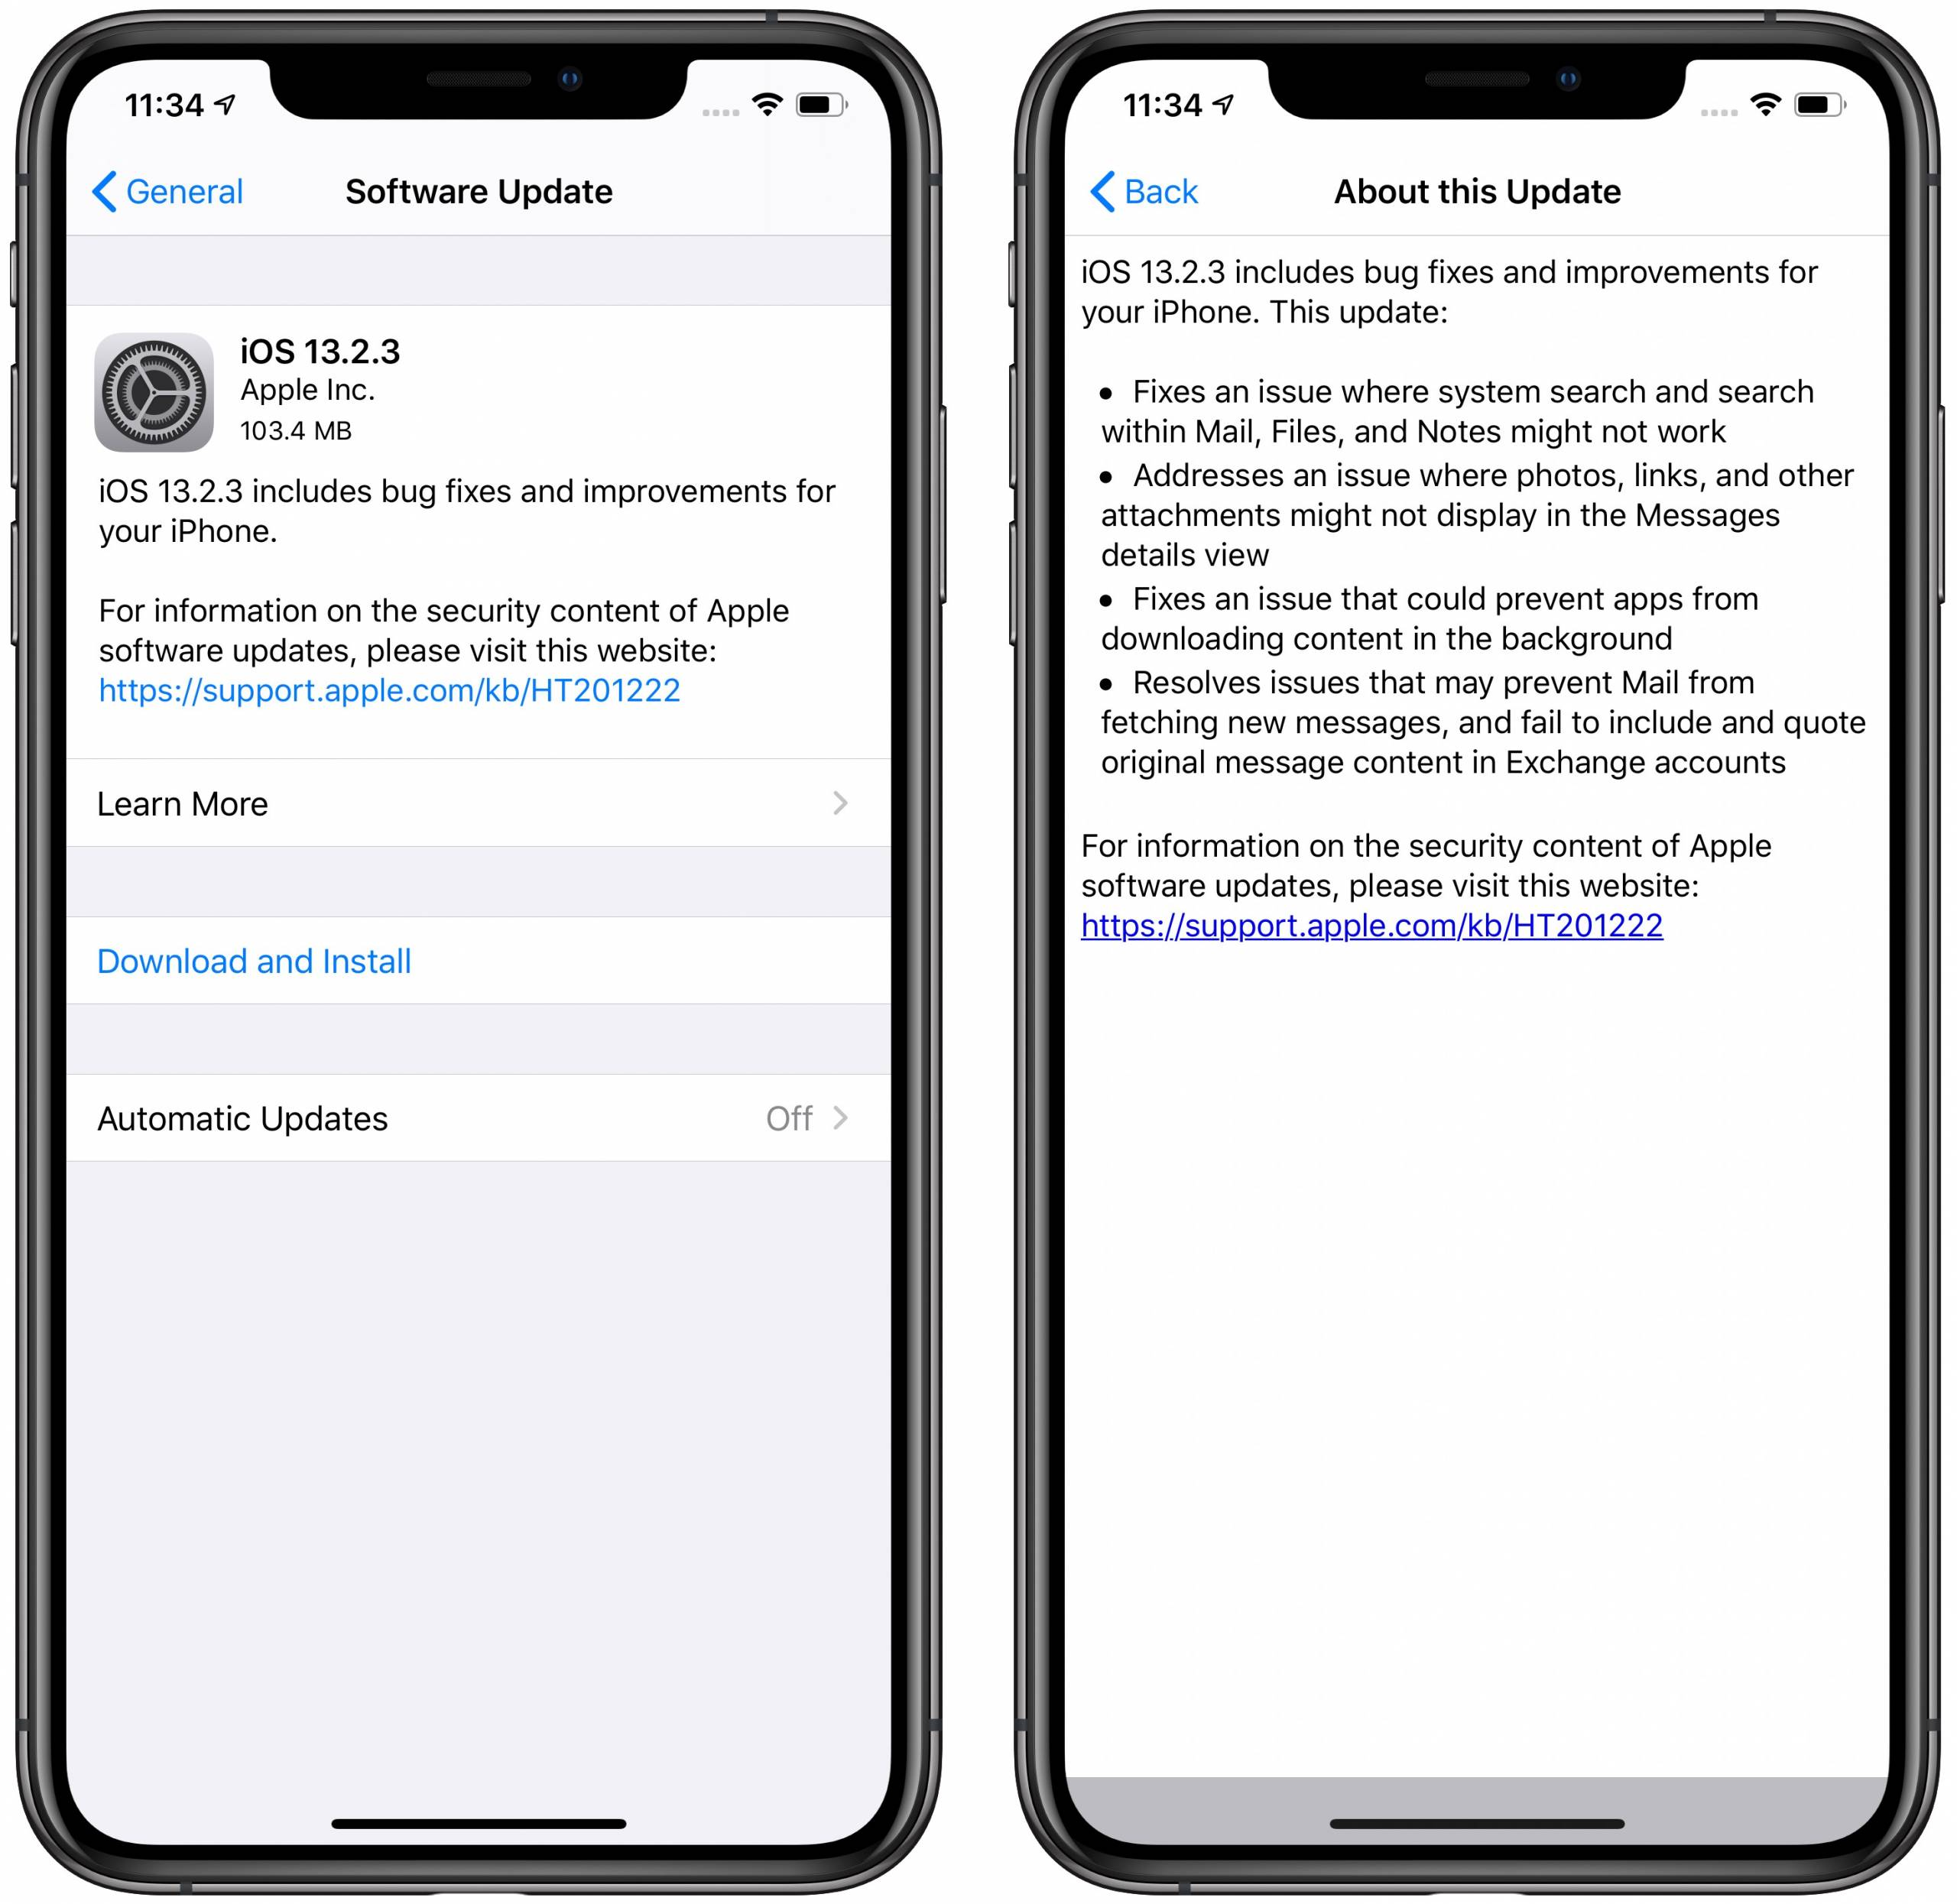 iOS 13.2.3 released to fix iPhone search and download bugs